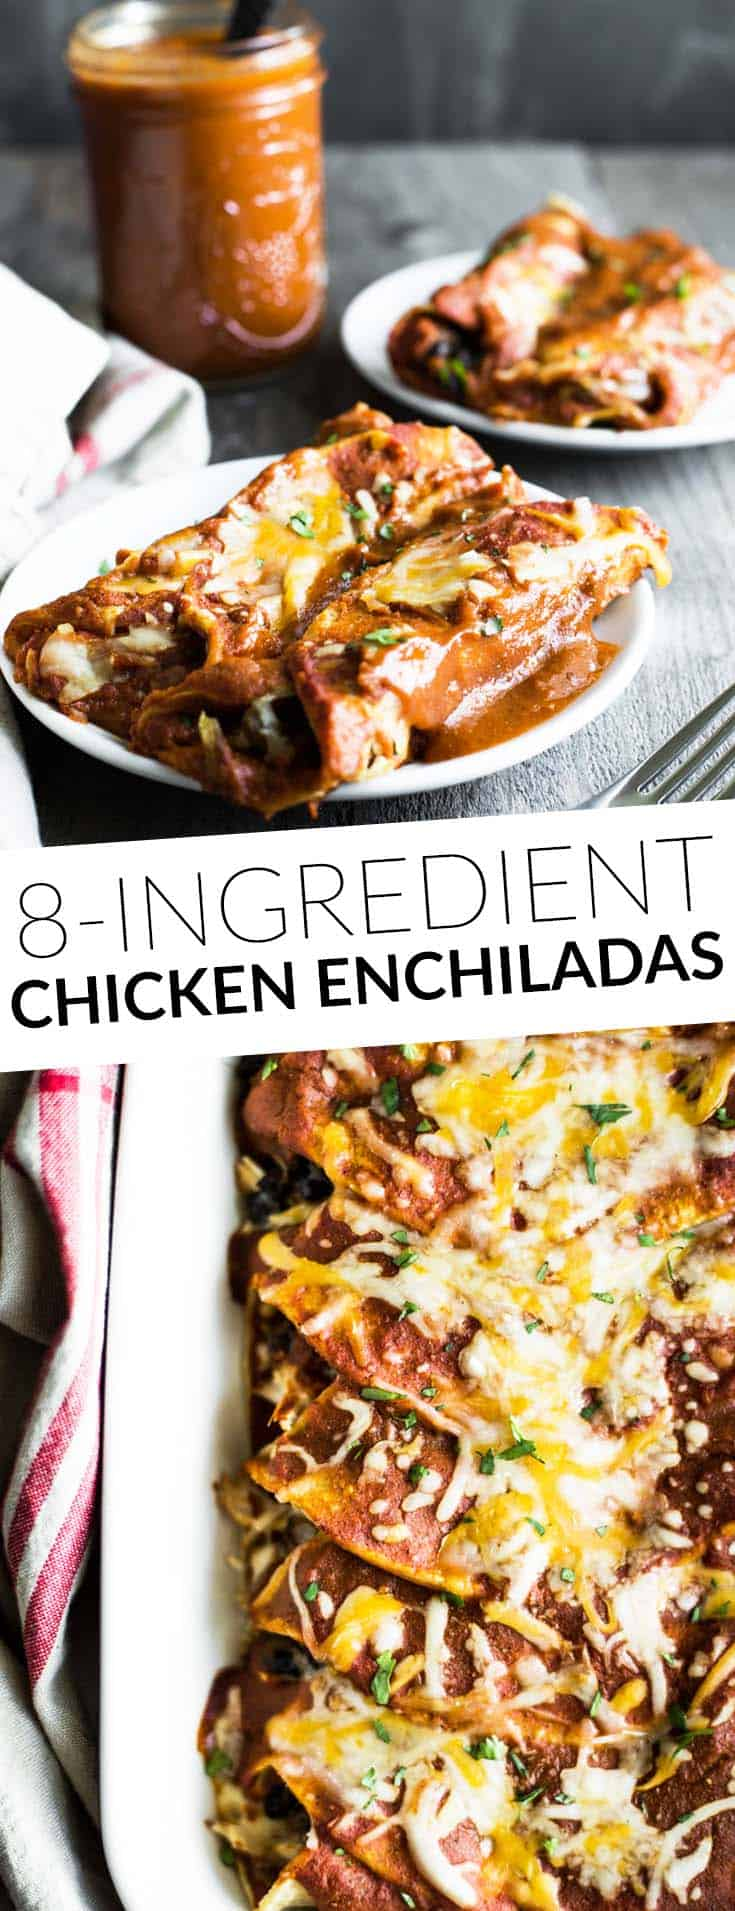 Easy Chicken Enchiladas - ready in 45 minutes and 8 ingredients! Perfect healthy weeknight meal! by @healthynibs